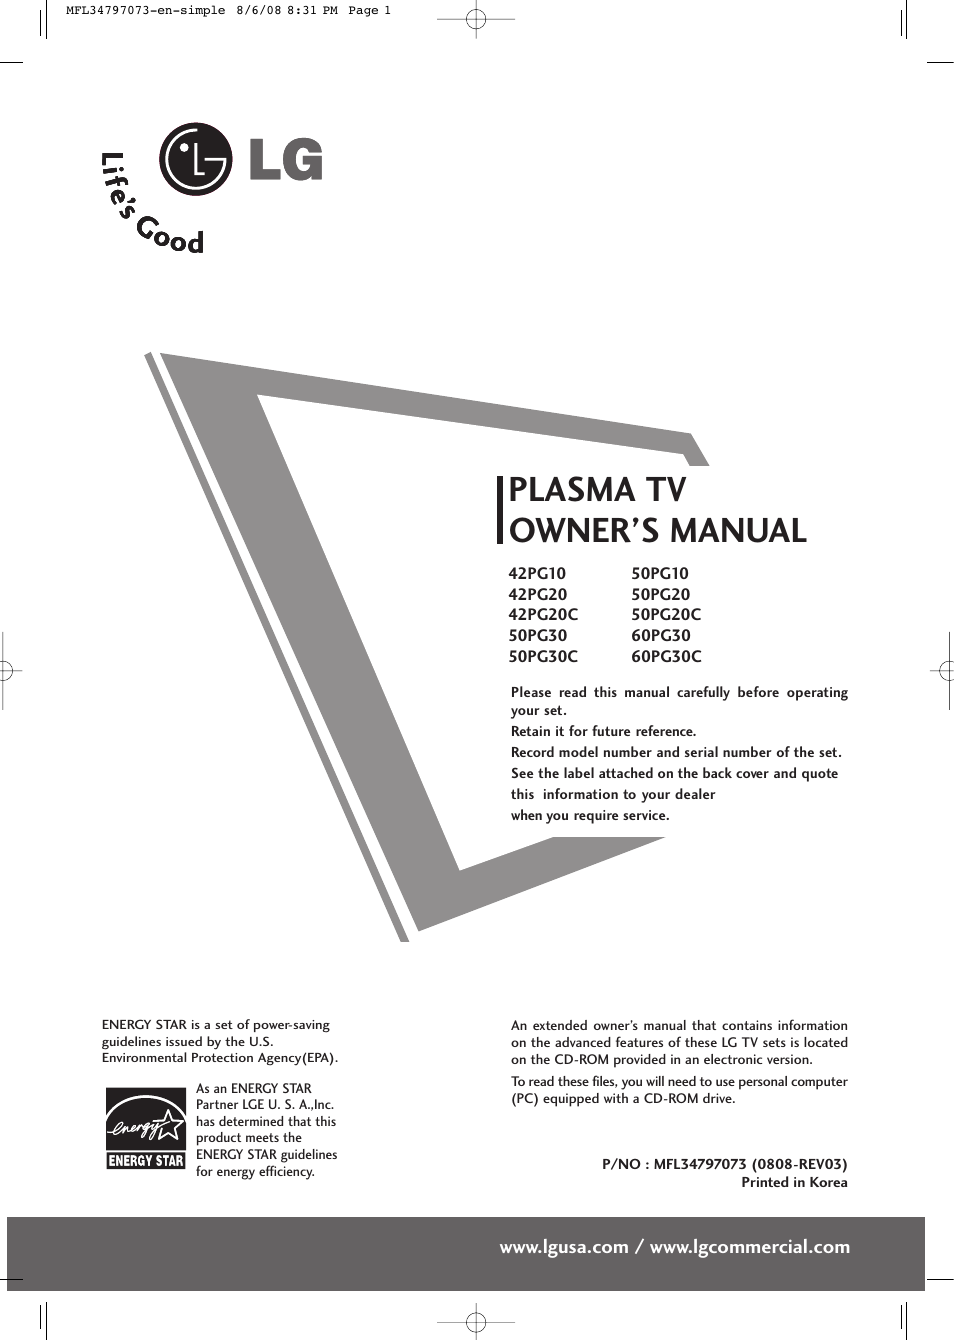 Tv user manuals user guide manual that easy to read lg user manual tv open source user manual u2022 rh dramatic varieties com samsung tv user manuals samsung tv user manuals fandeluxe Image collections